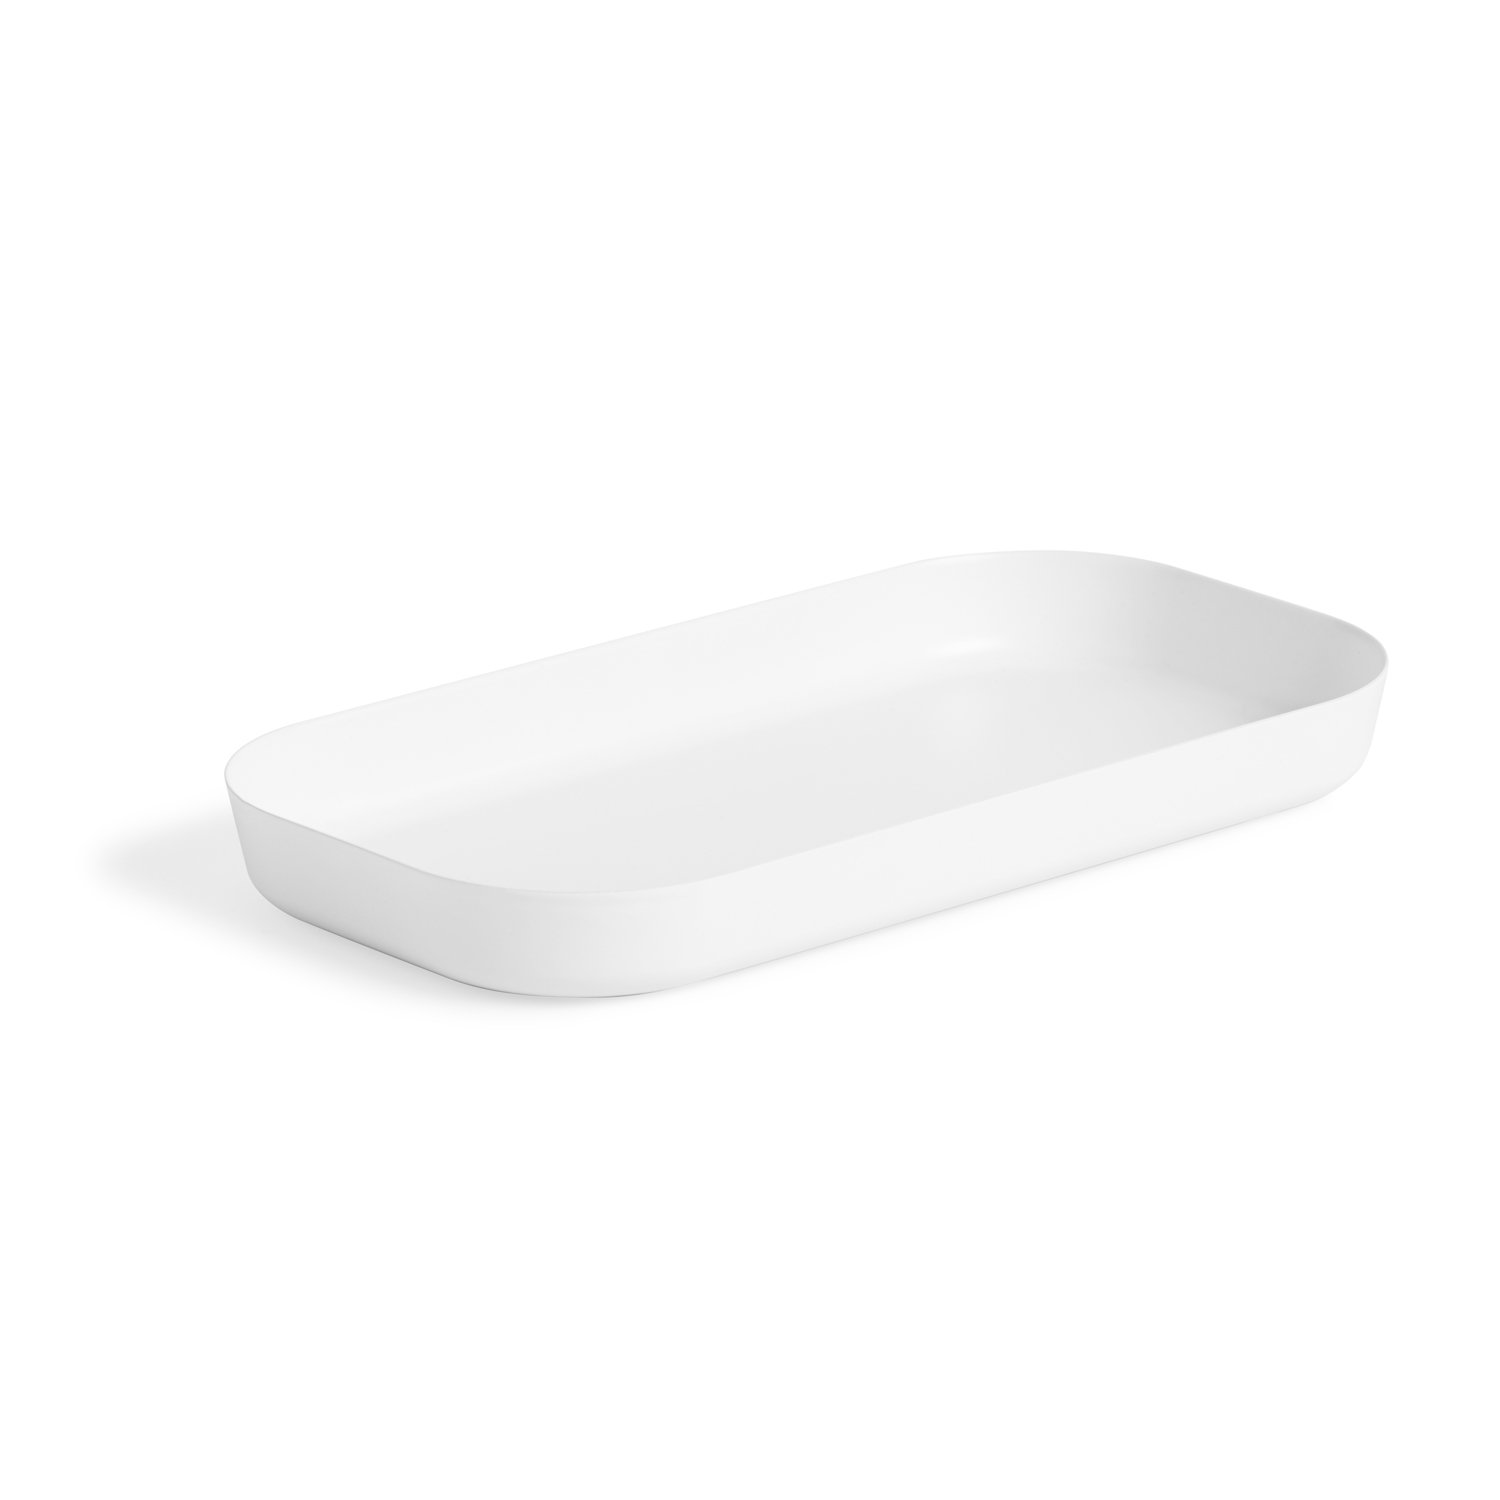 Umbra Vana Amenity Tray, White